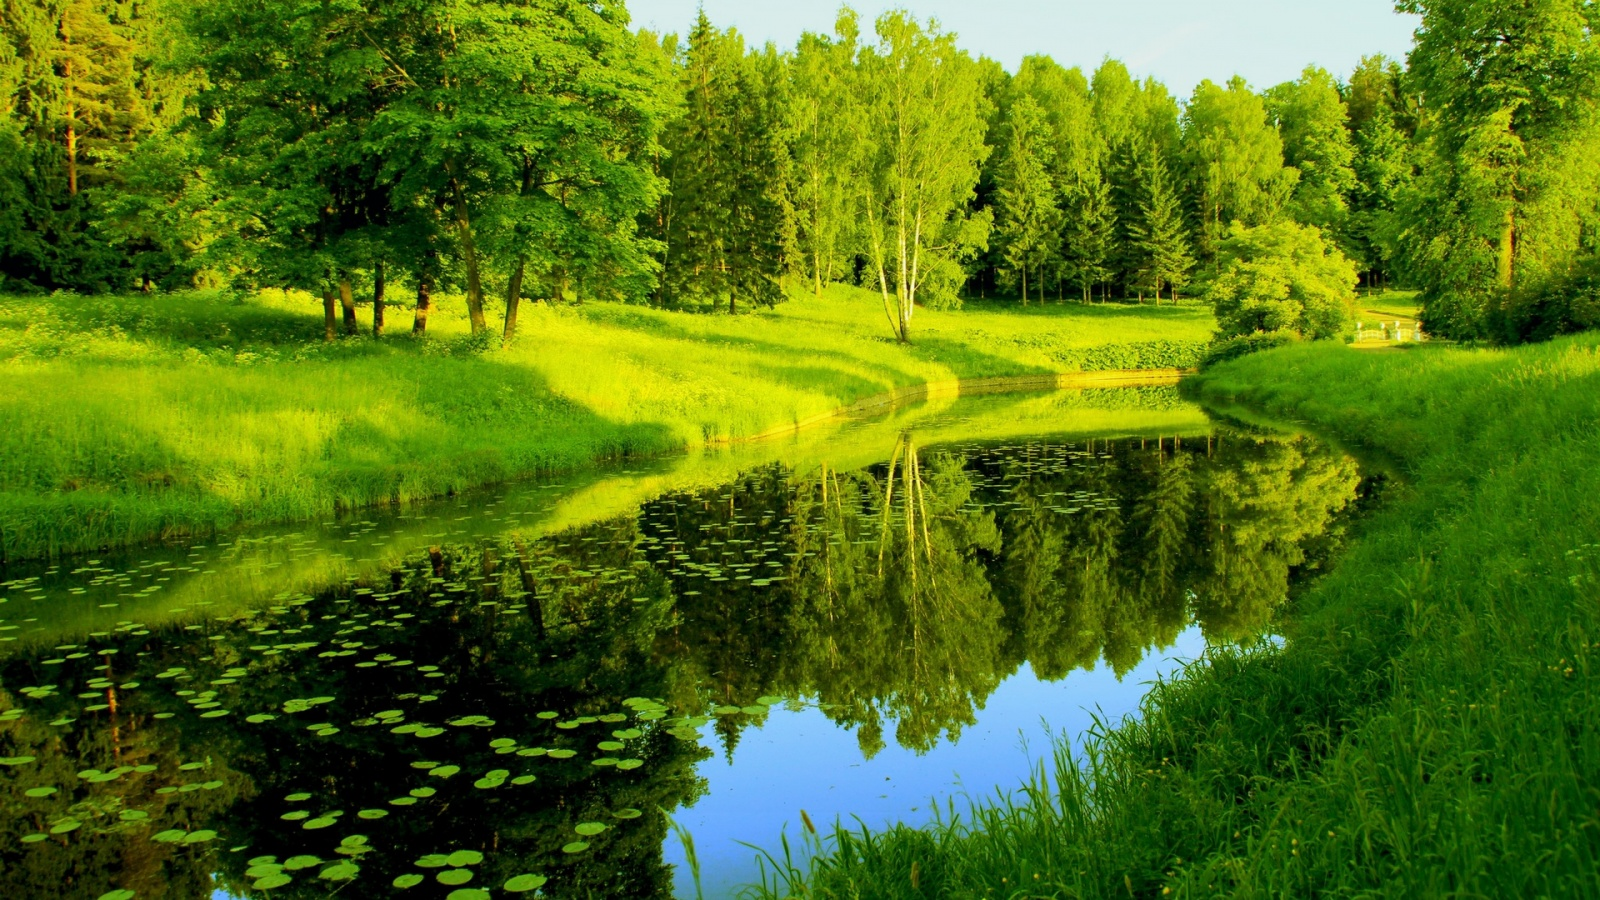 Nature Trees River Reflection Wallpaper 1600x900